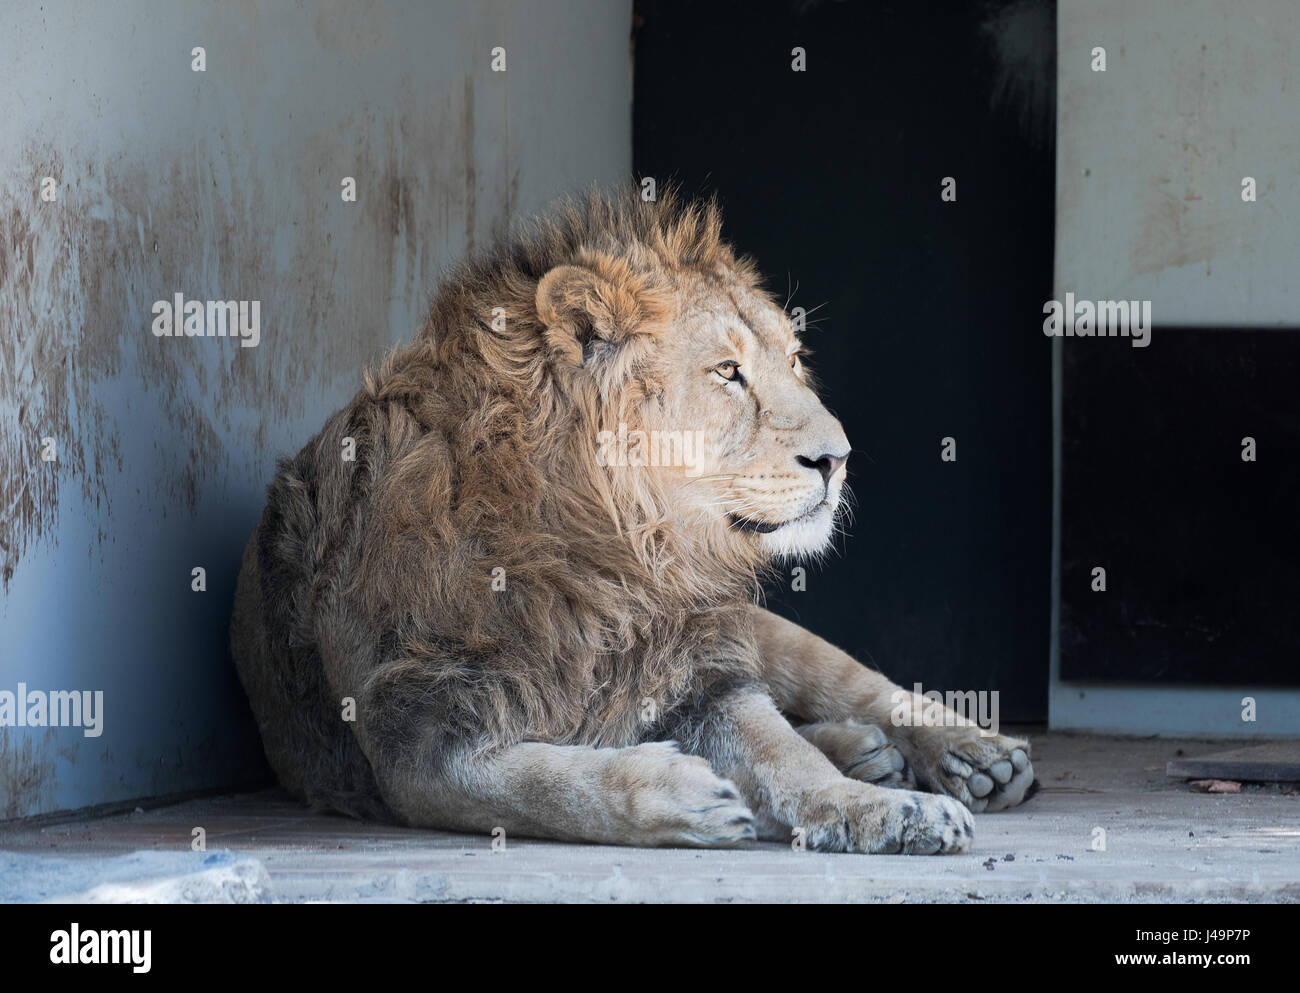 Asiatic Lion from the Wilhelma Zoo in Stuttgart Germany - Stock Image